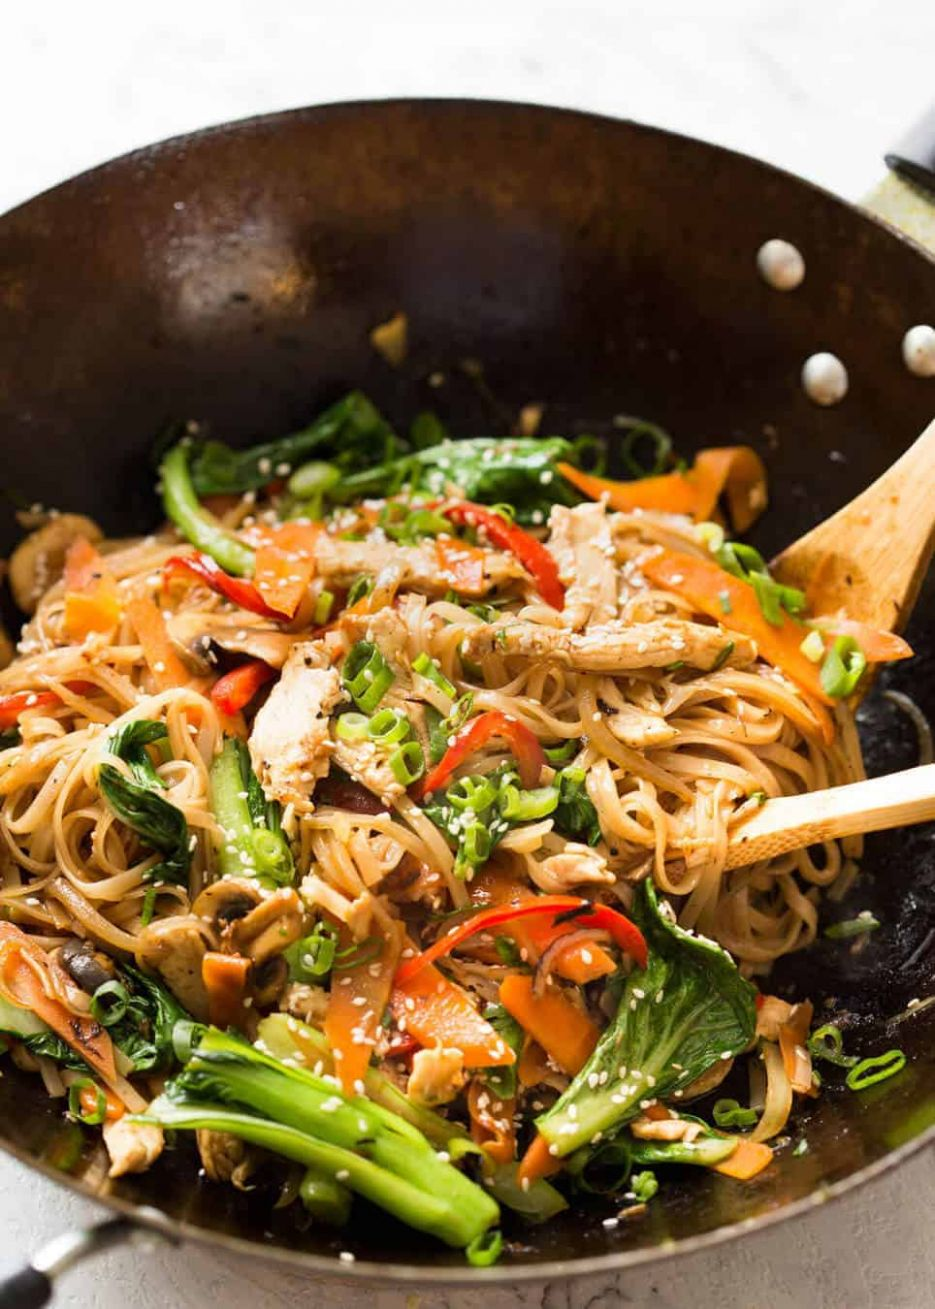 Chicken Stir Fry with Rice Noodles - Recipes Rice Vermicelli Noodles